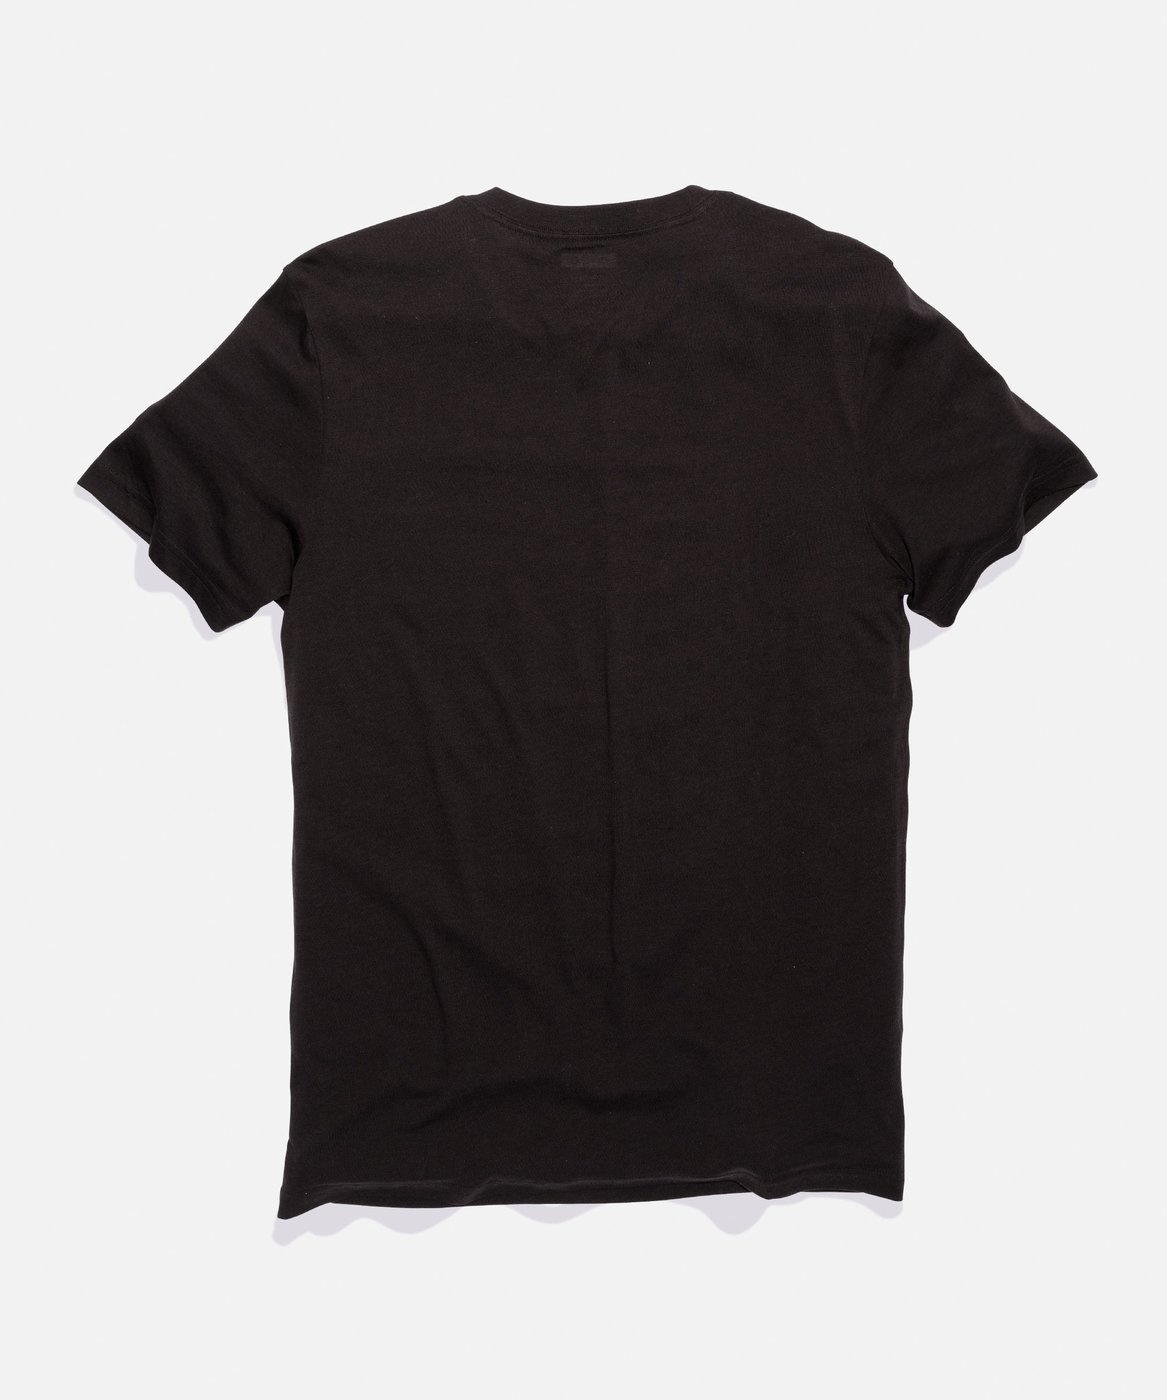 Stance Standard pocket T Black